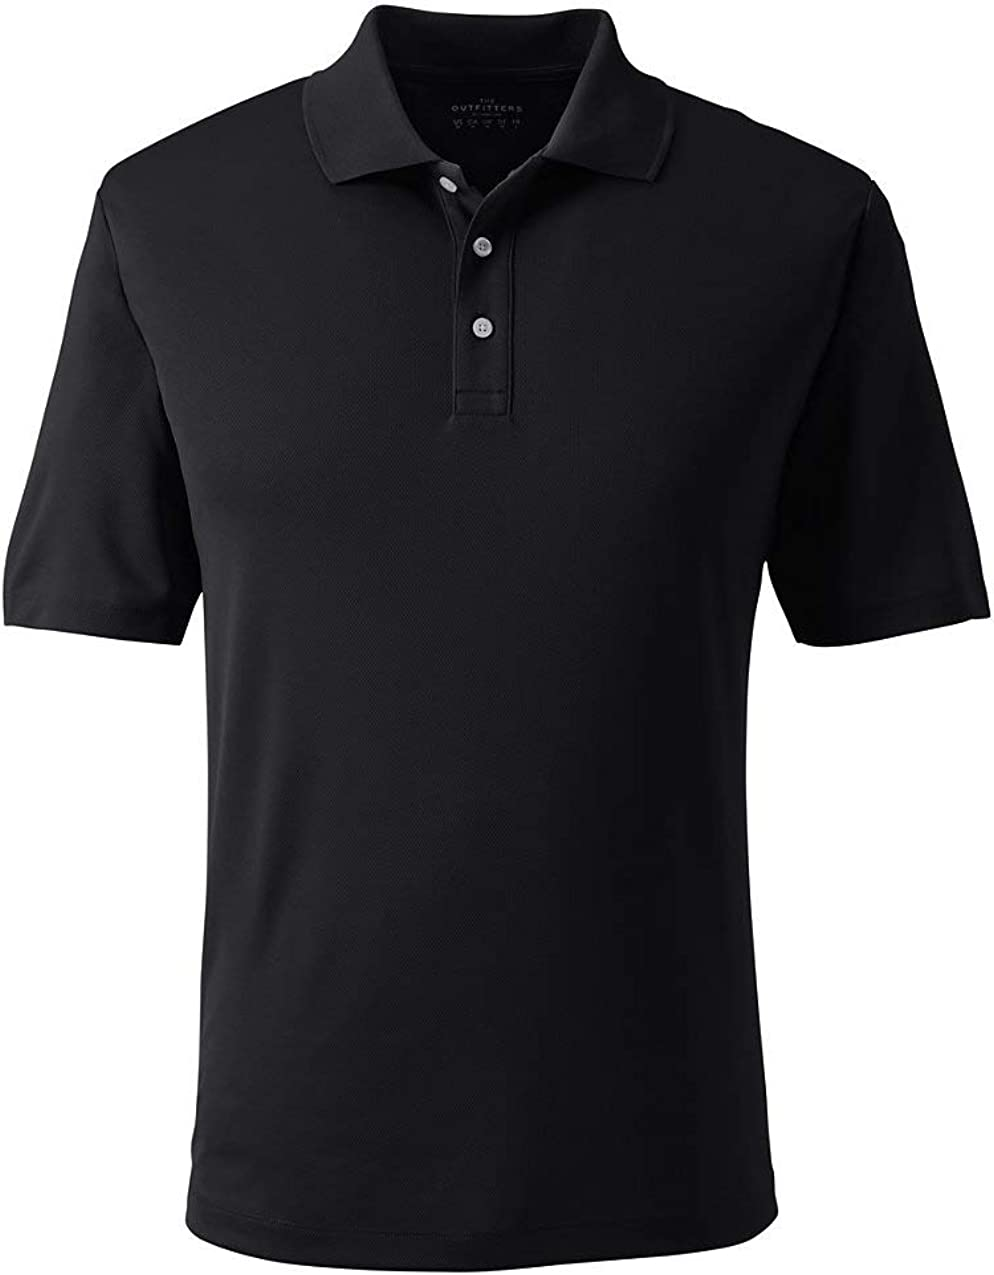 Lands' End Men's Short Sleeve Solid Active Polo Shirt